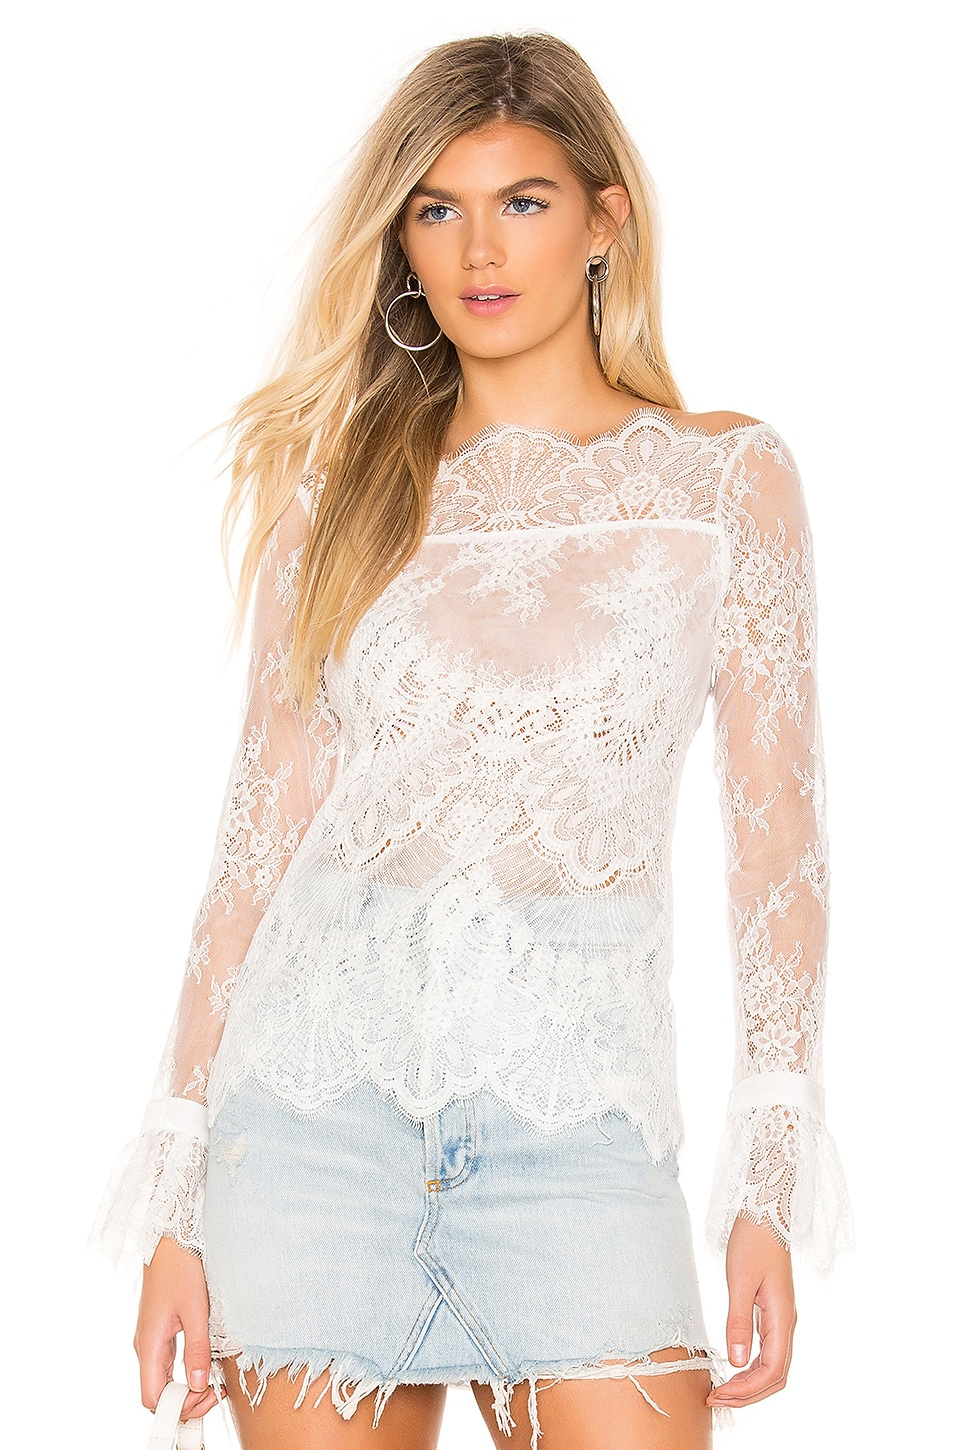 MAJORELLE Samantha Top in White